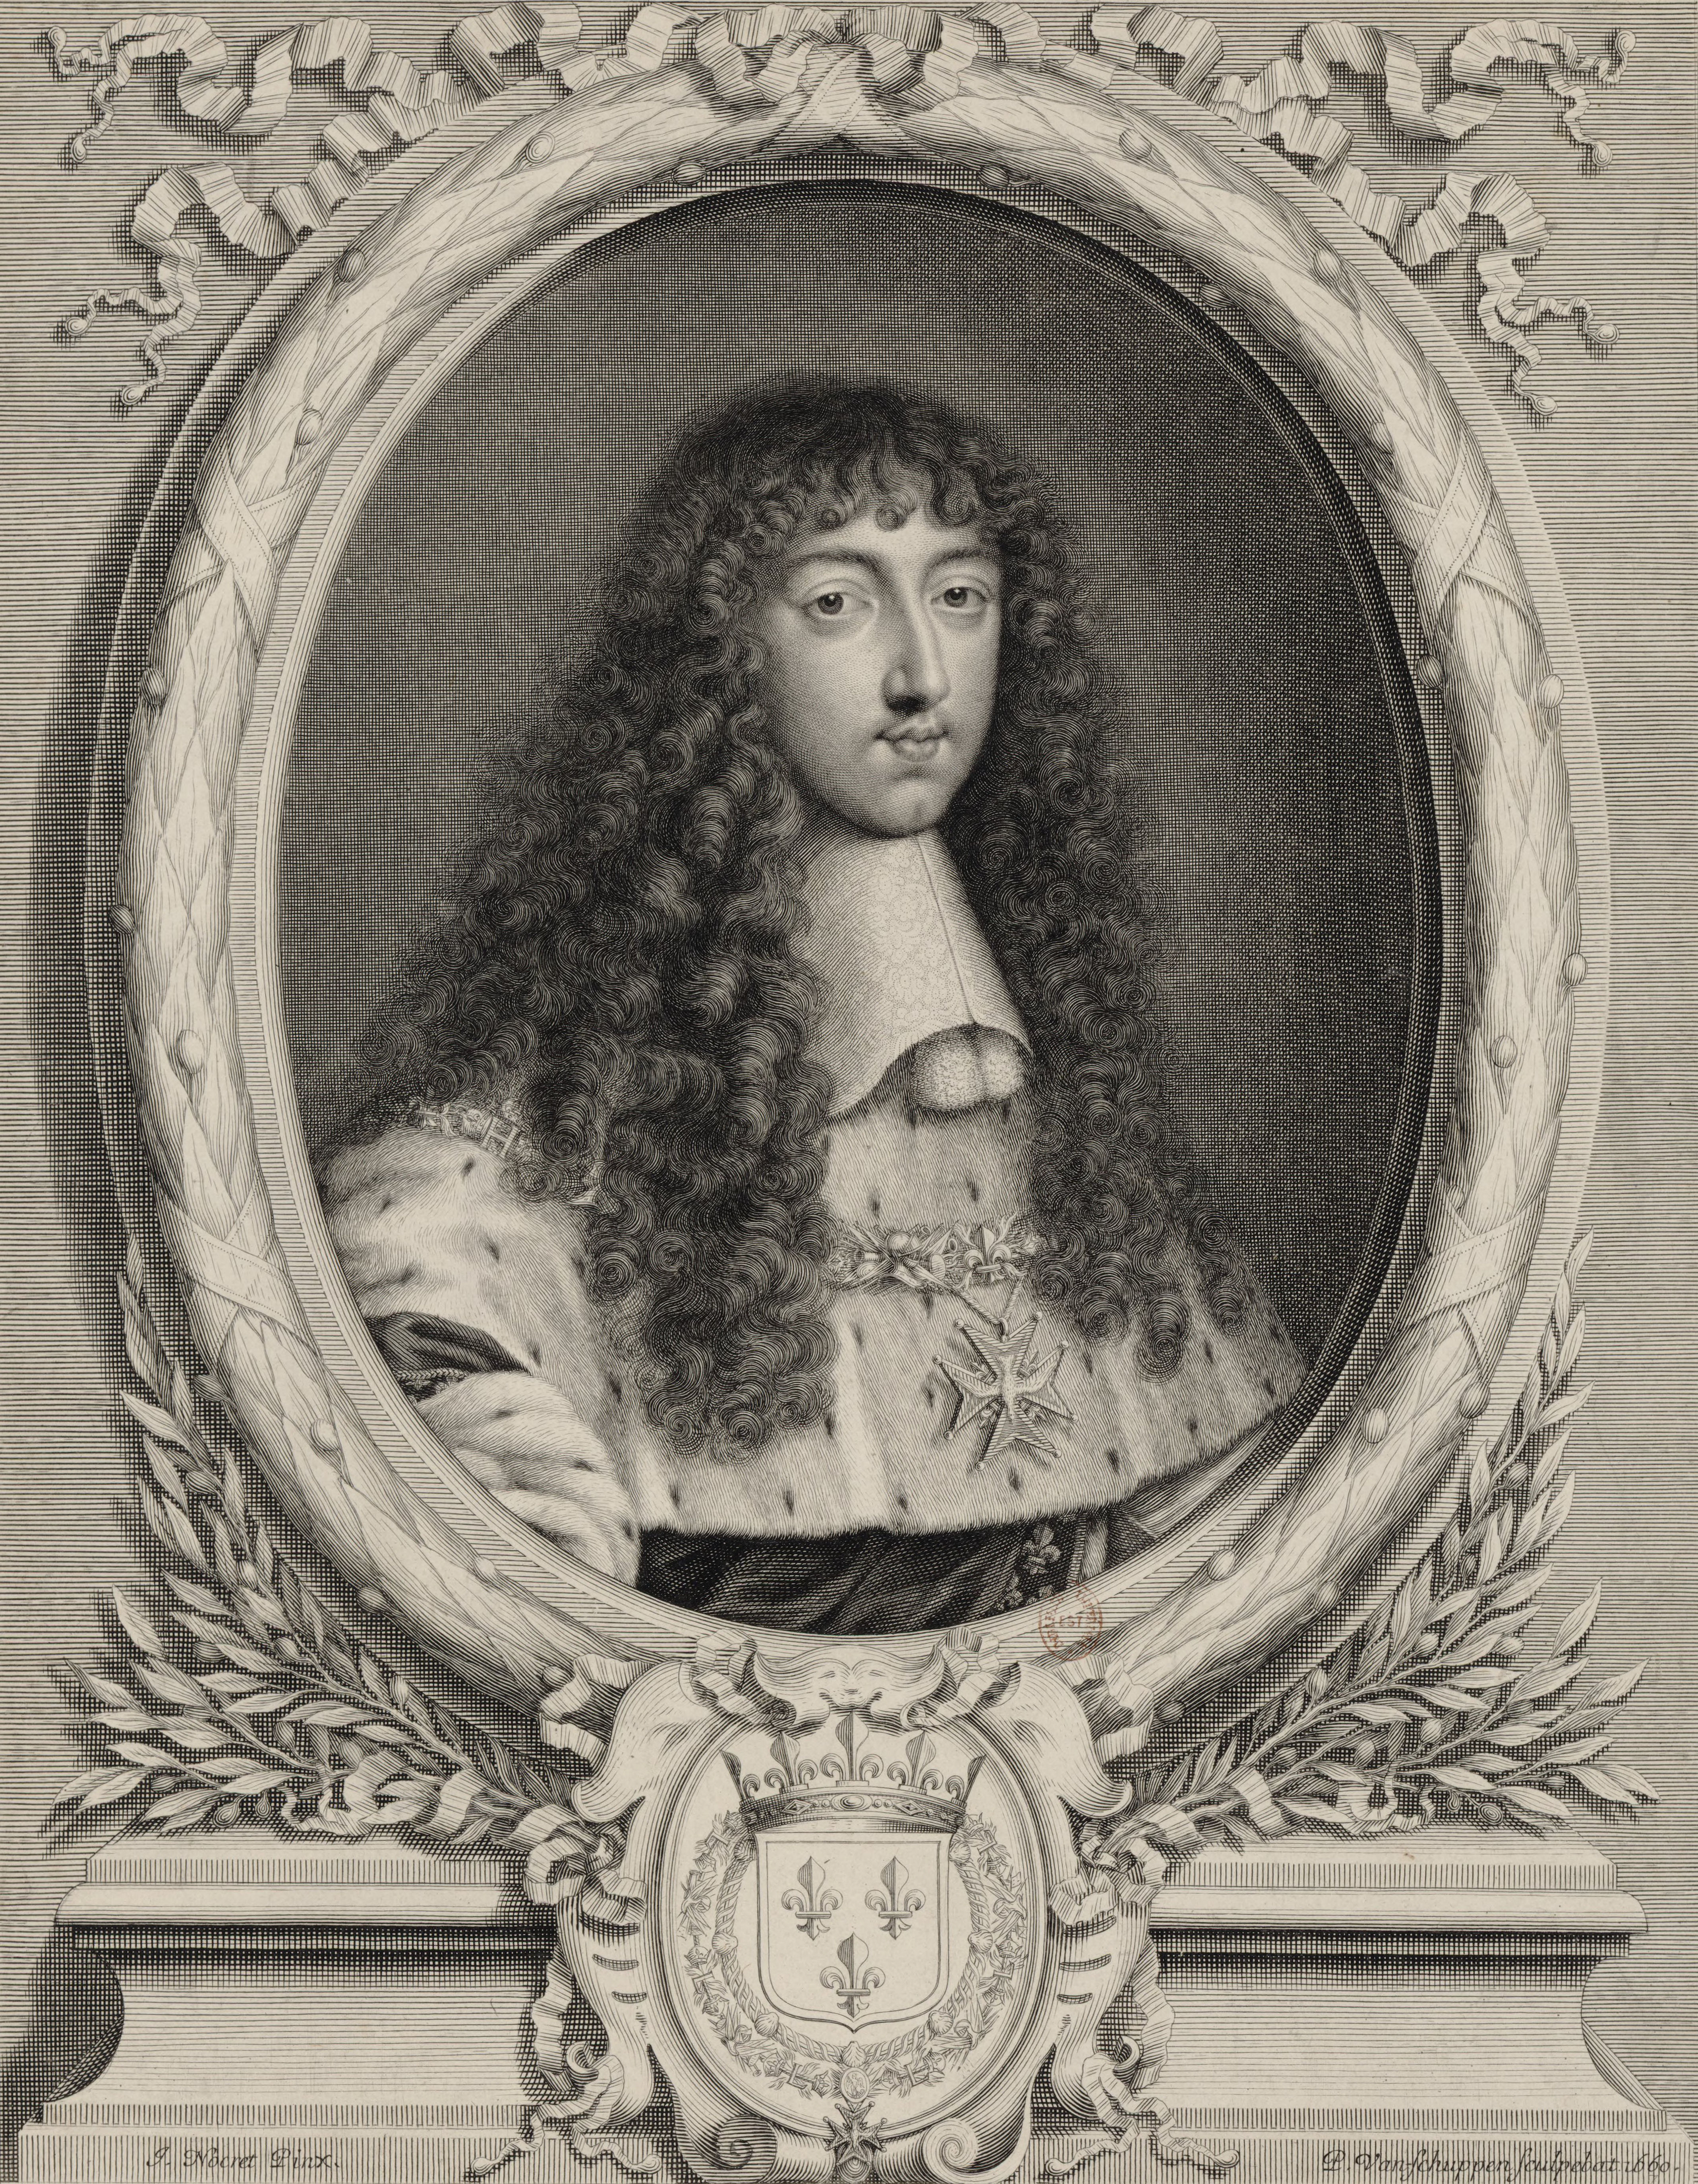 biography of louis xiv as one of the most remarkable monarchs in the history of france Louis xiv of france ranks as one of the most remarkable monarchs in history he reigned for 72 years, 54 of them he personally controlled french government.